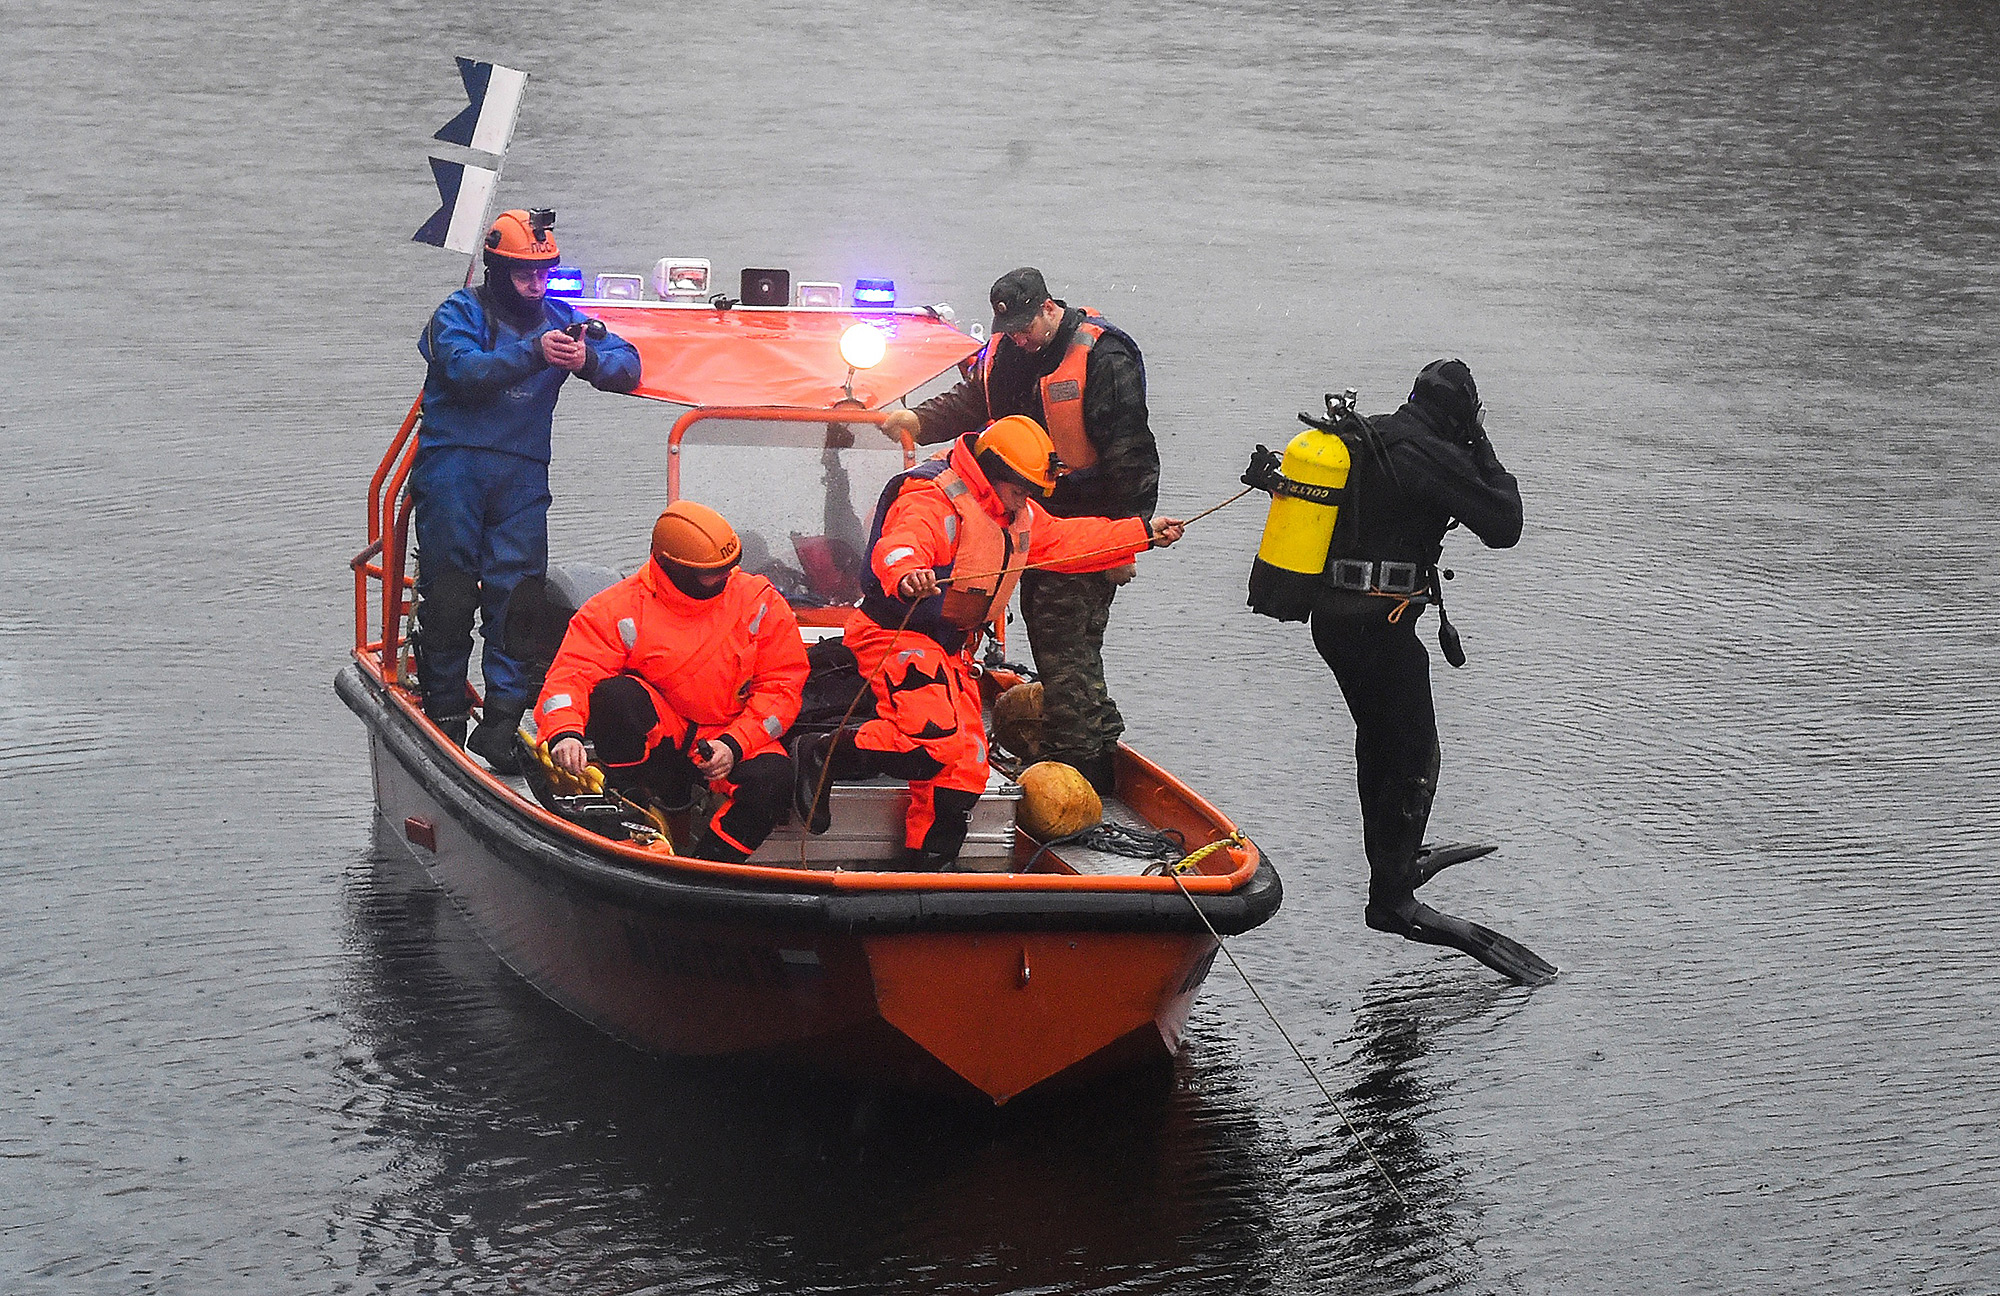 Russian Emergency rescuers and police investigators conduct searches on the Moika River, in Saint Petersburg